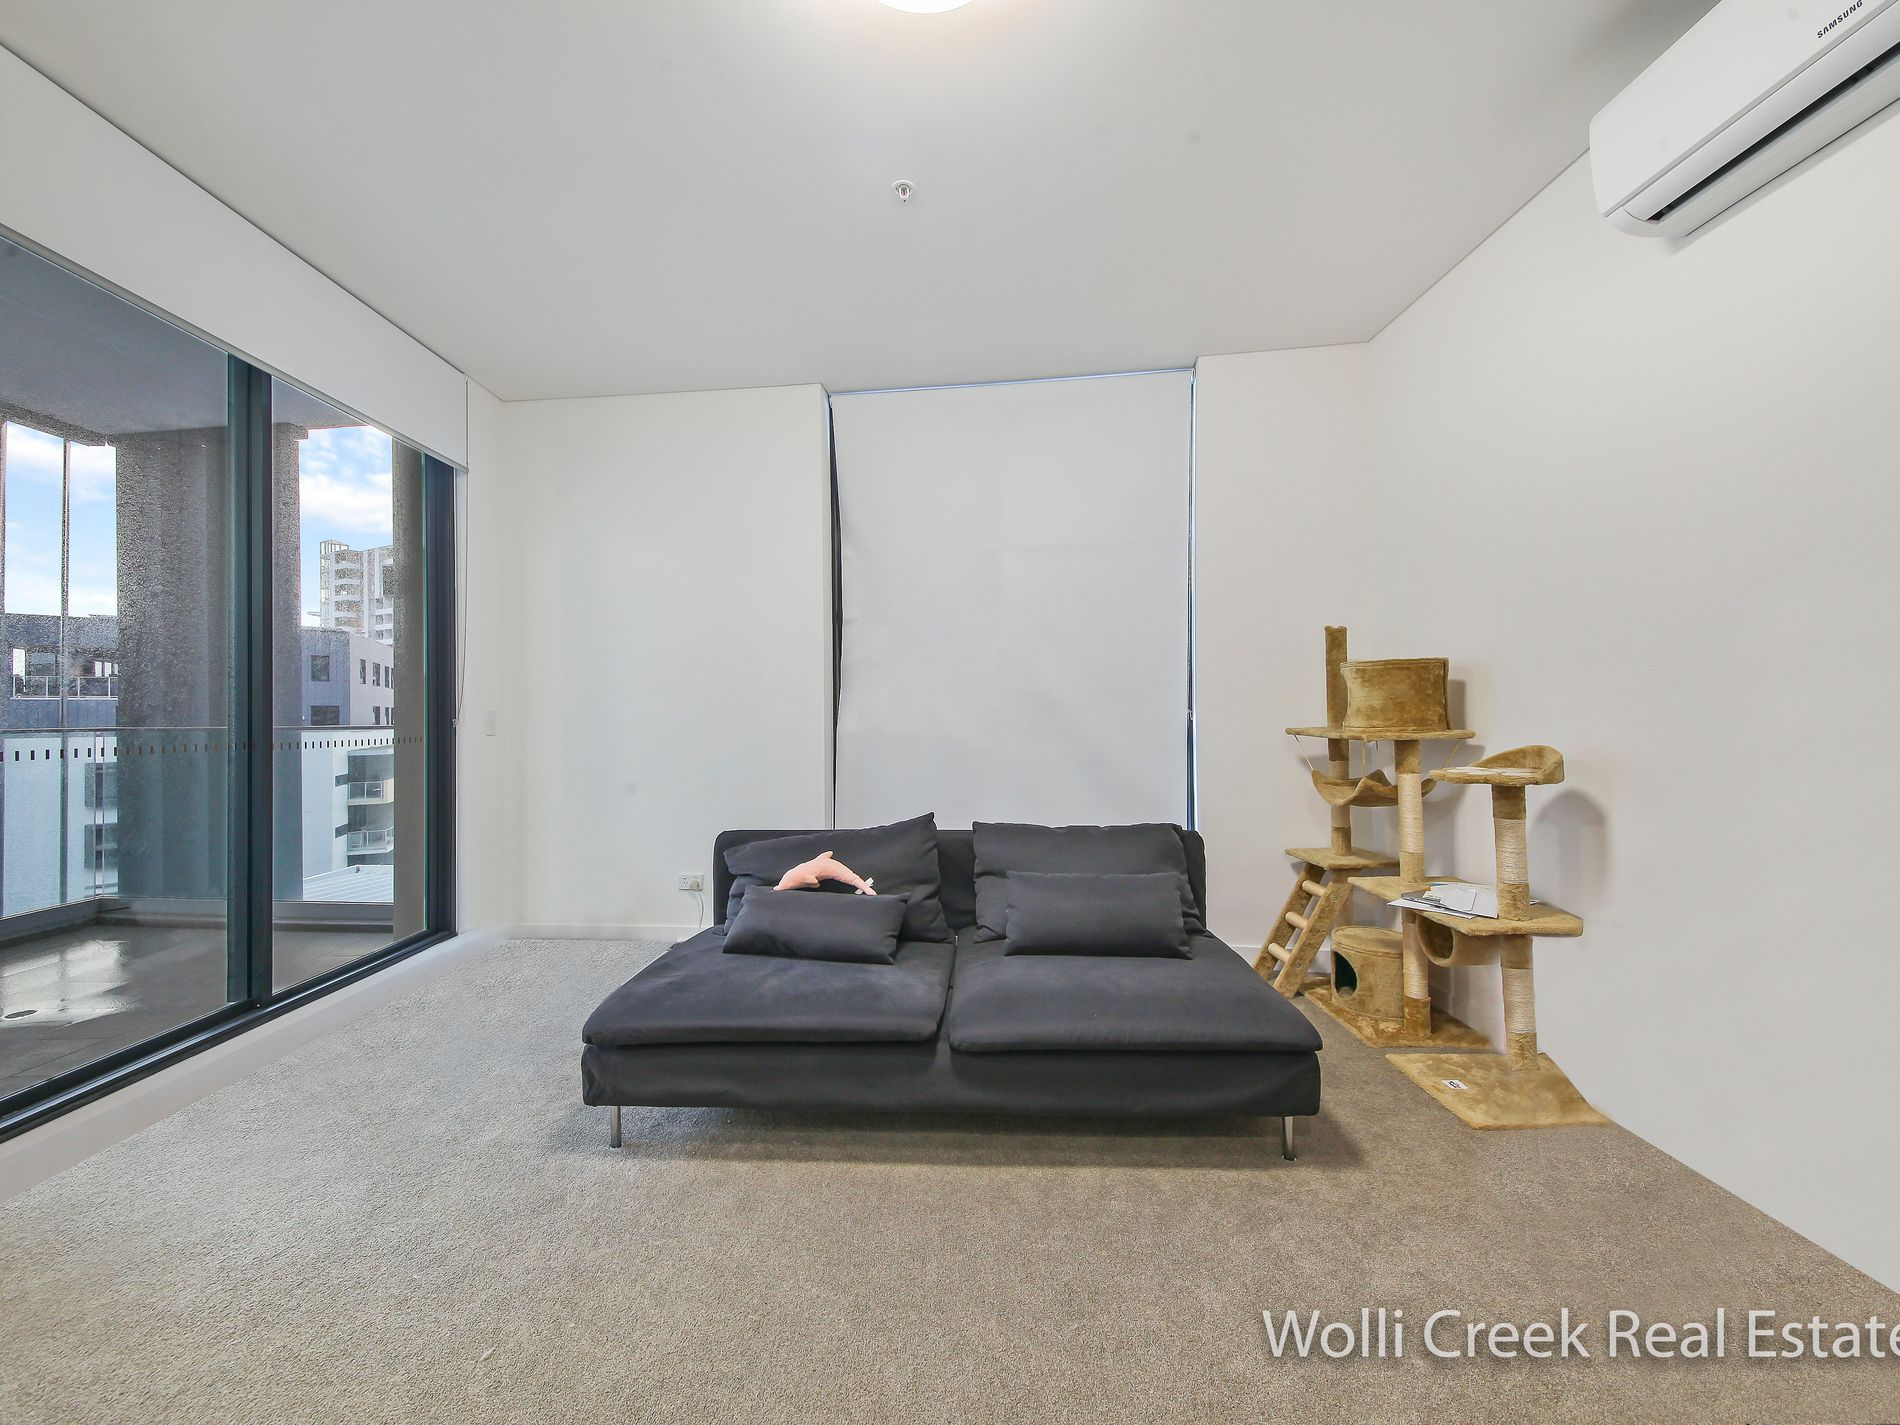 1001 / 15 Brodie Spark Drive, Wolli Creek